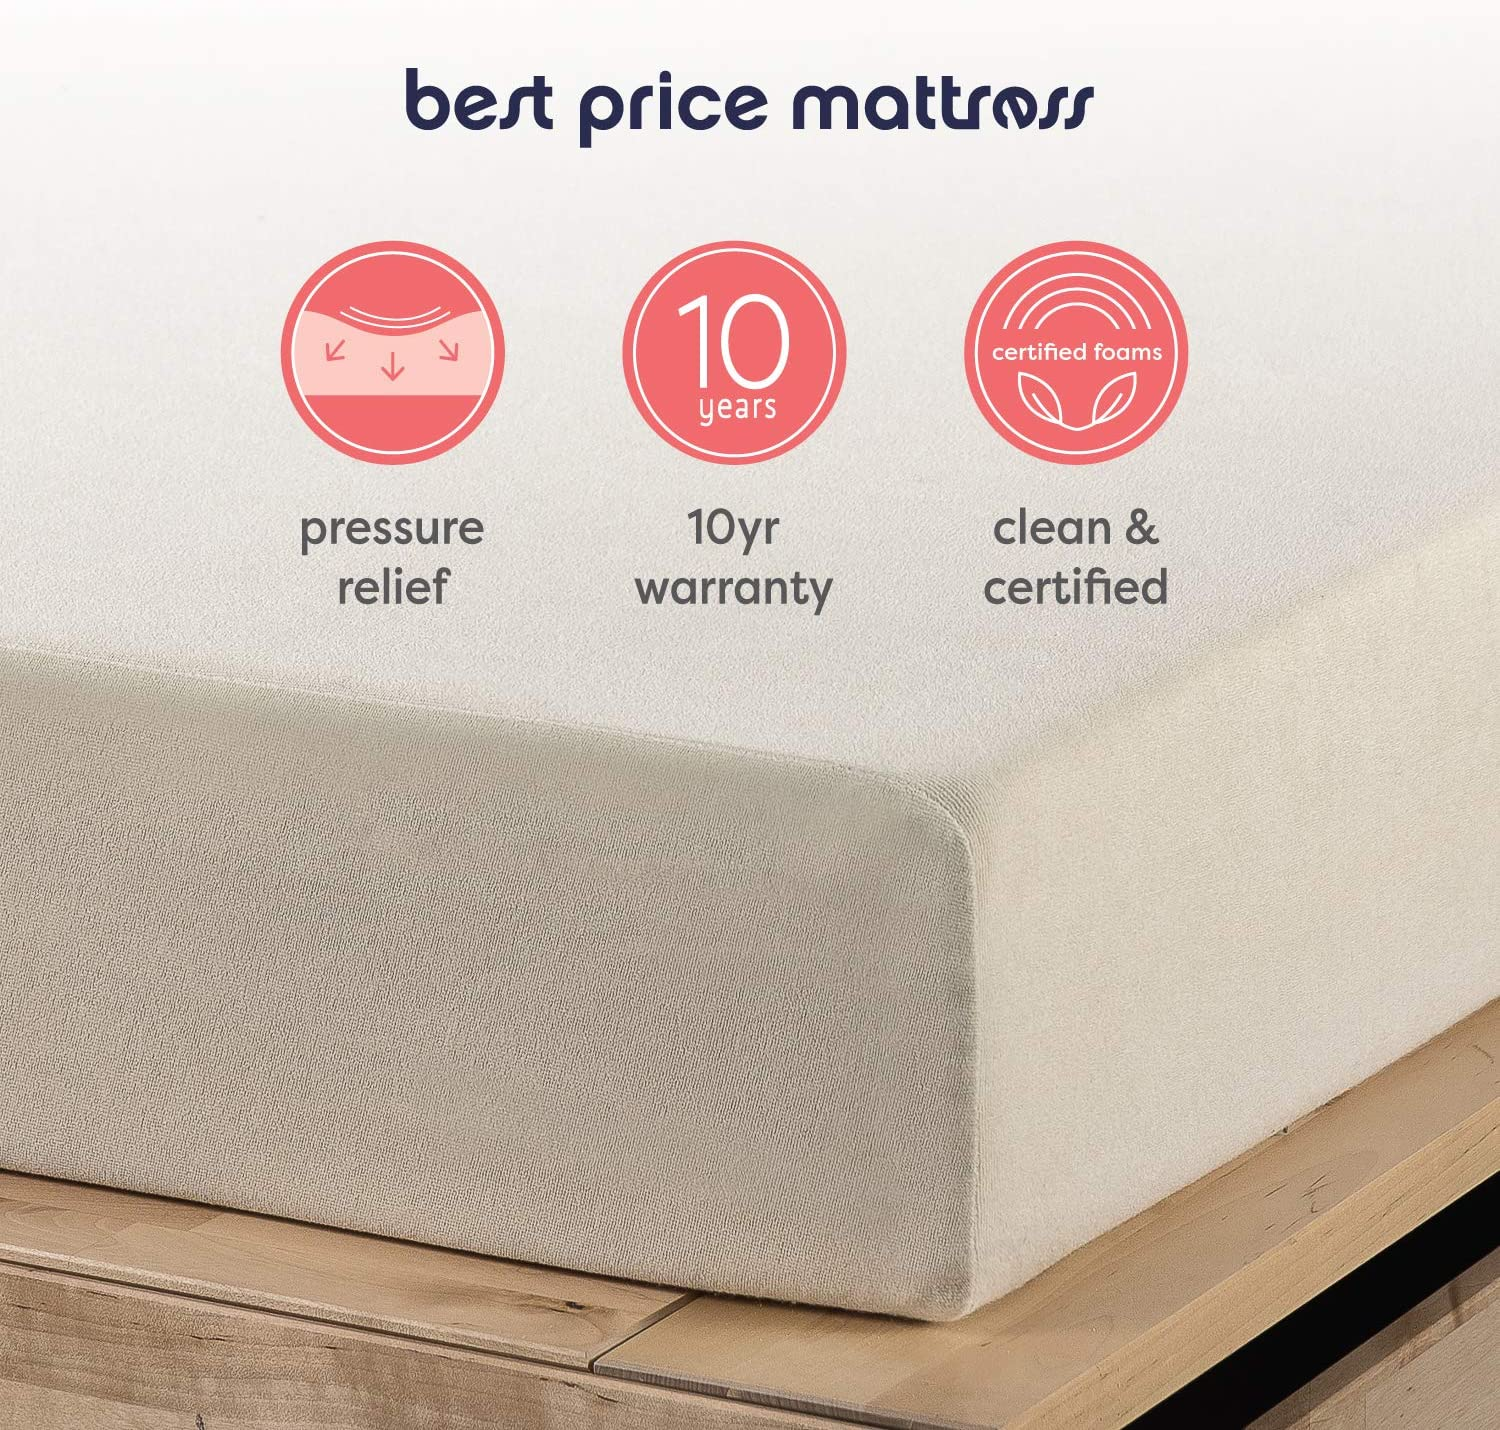 Best Price Mattress 6 Inch Memory Foam Mattress, Calming Green Tea Infusion, Pressure Relieving, Bed-in-a-Box, CertiPUR-US Certified, Twin: Furniture & Decor